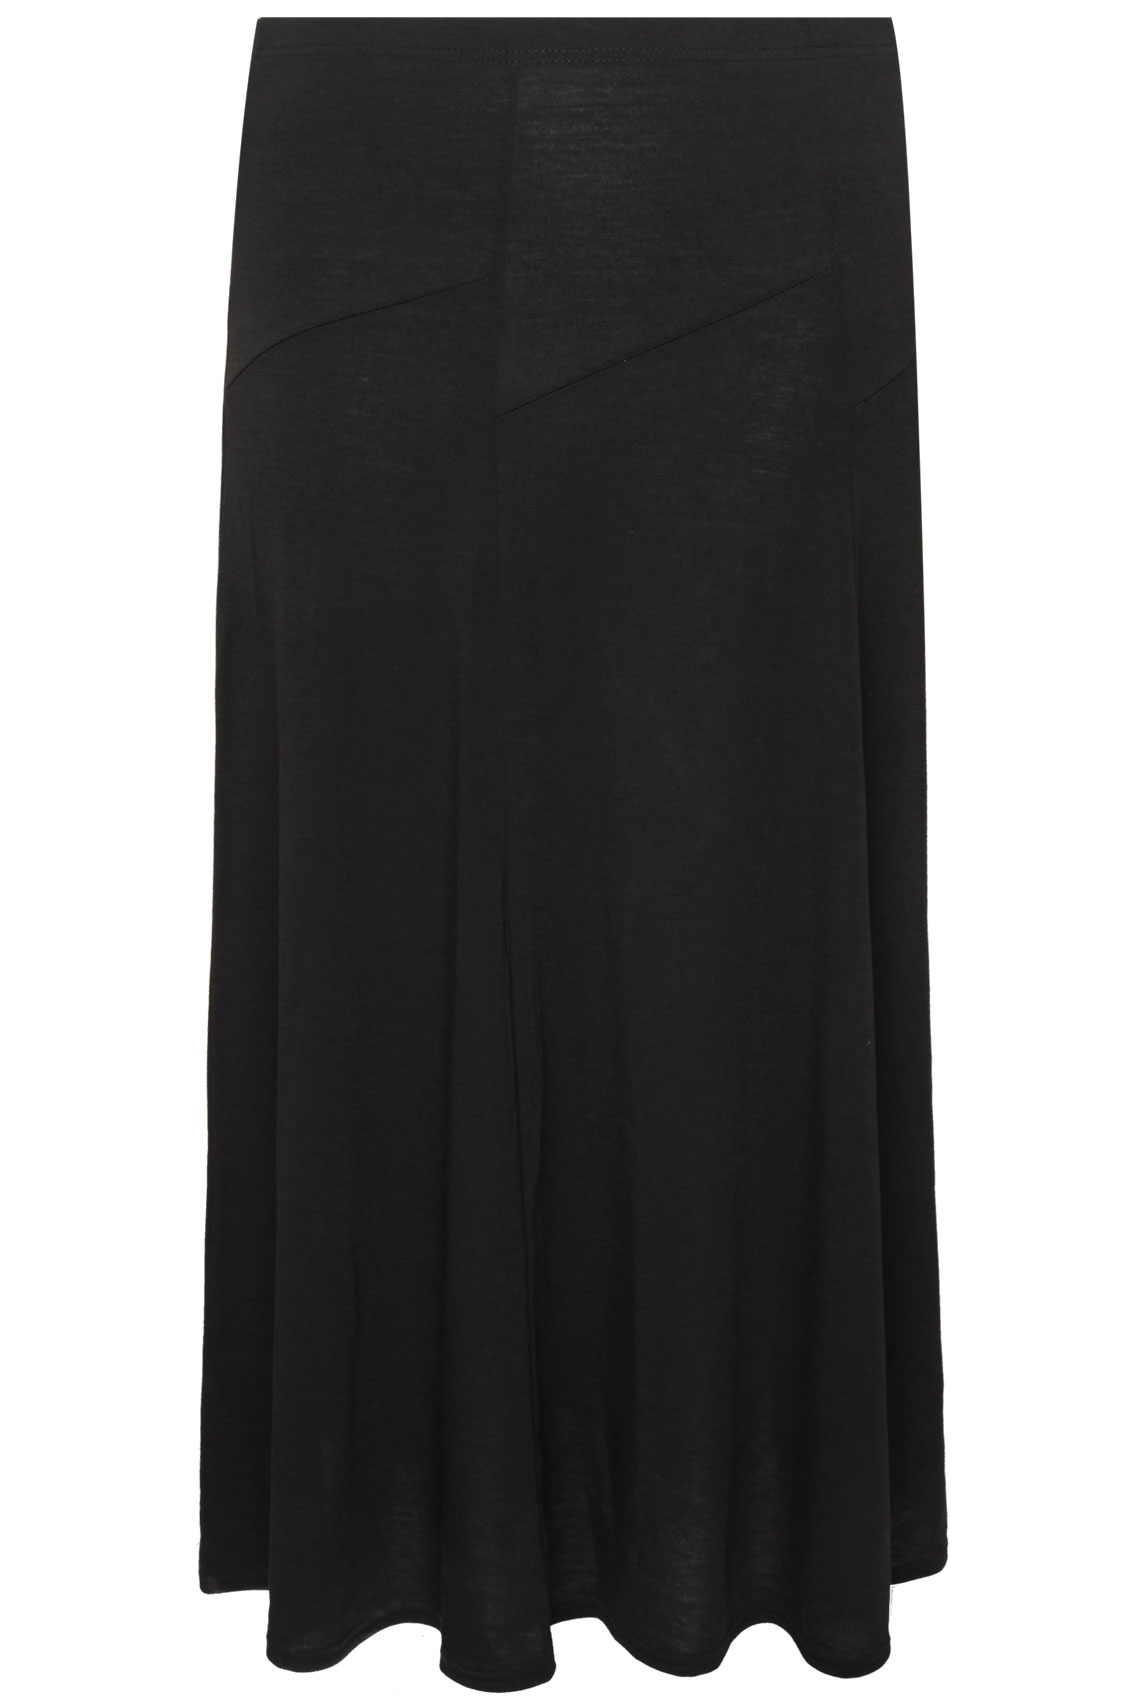 black jersey maxi skirt with abstract panel detail plus